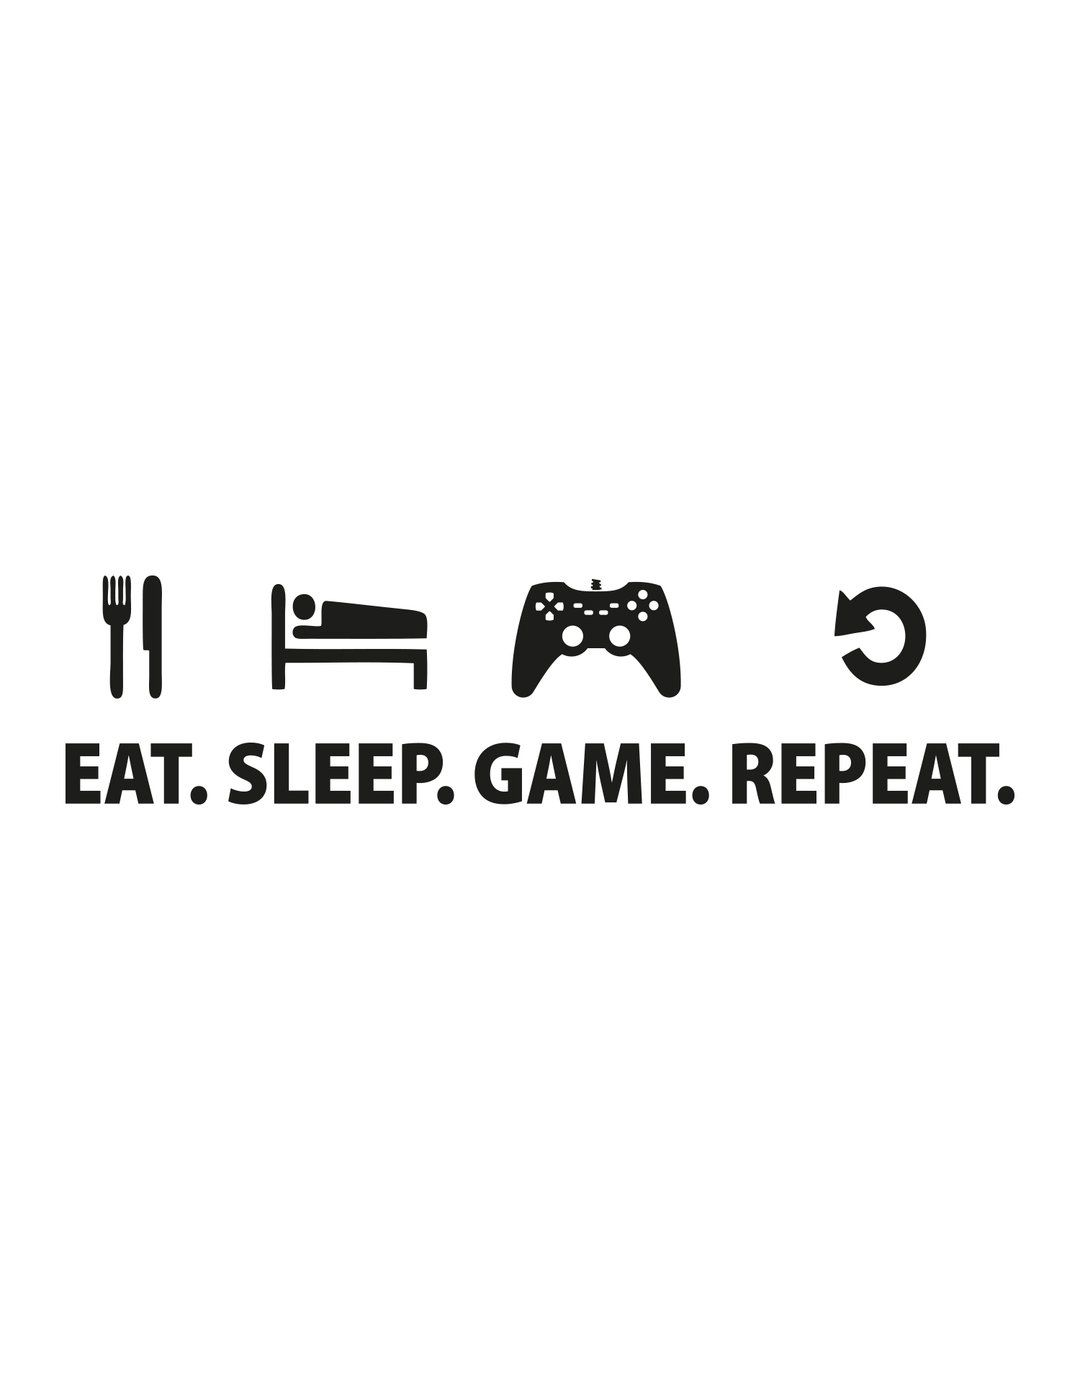 Eat Sleep Game Repeat Gamer Wall Decal Quote 6123 Gamer Quotes Wall Quotes Decals Gaming Wallpapers